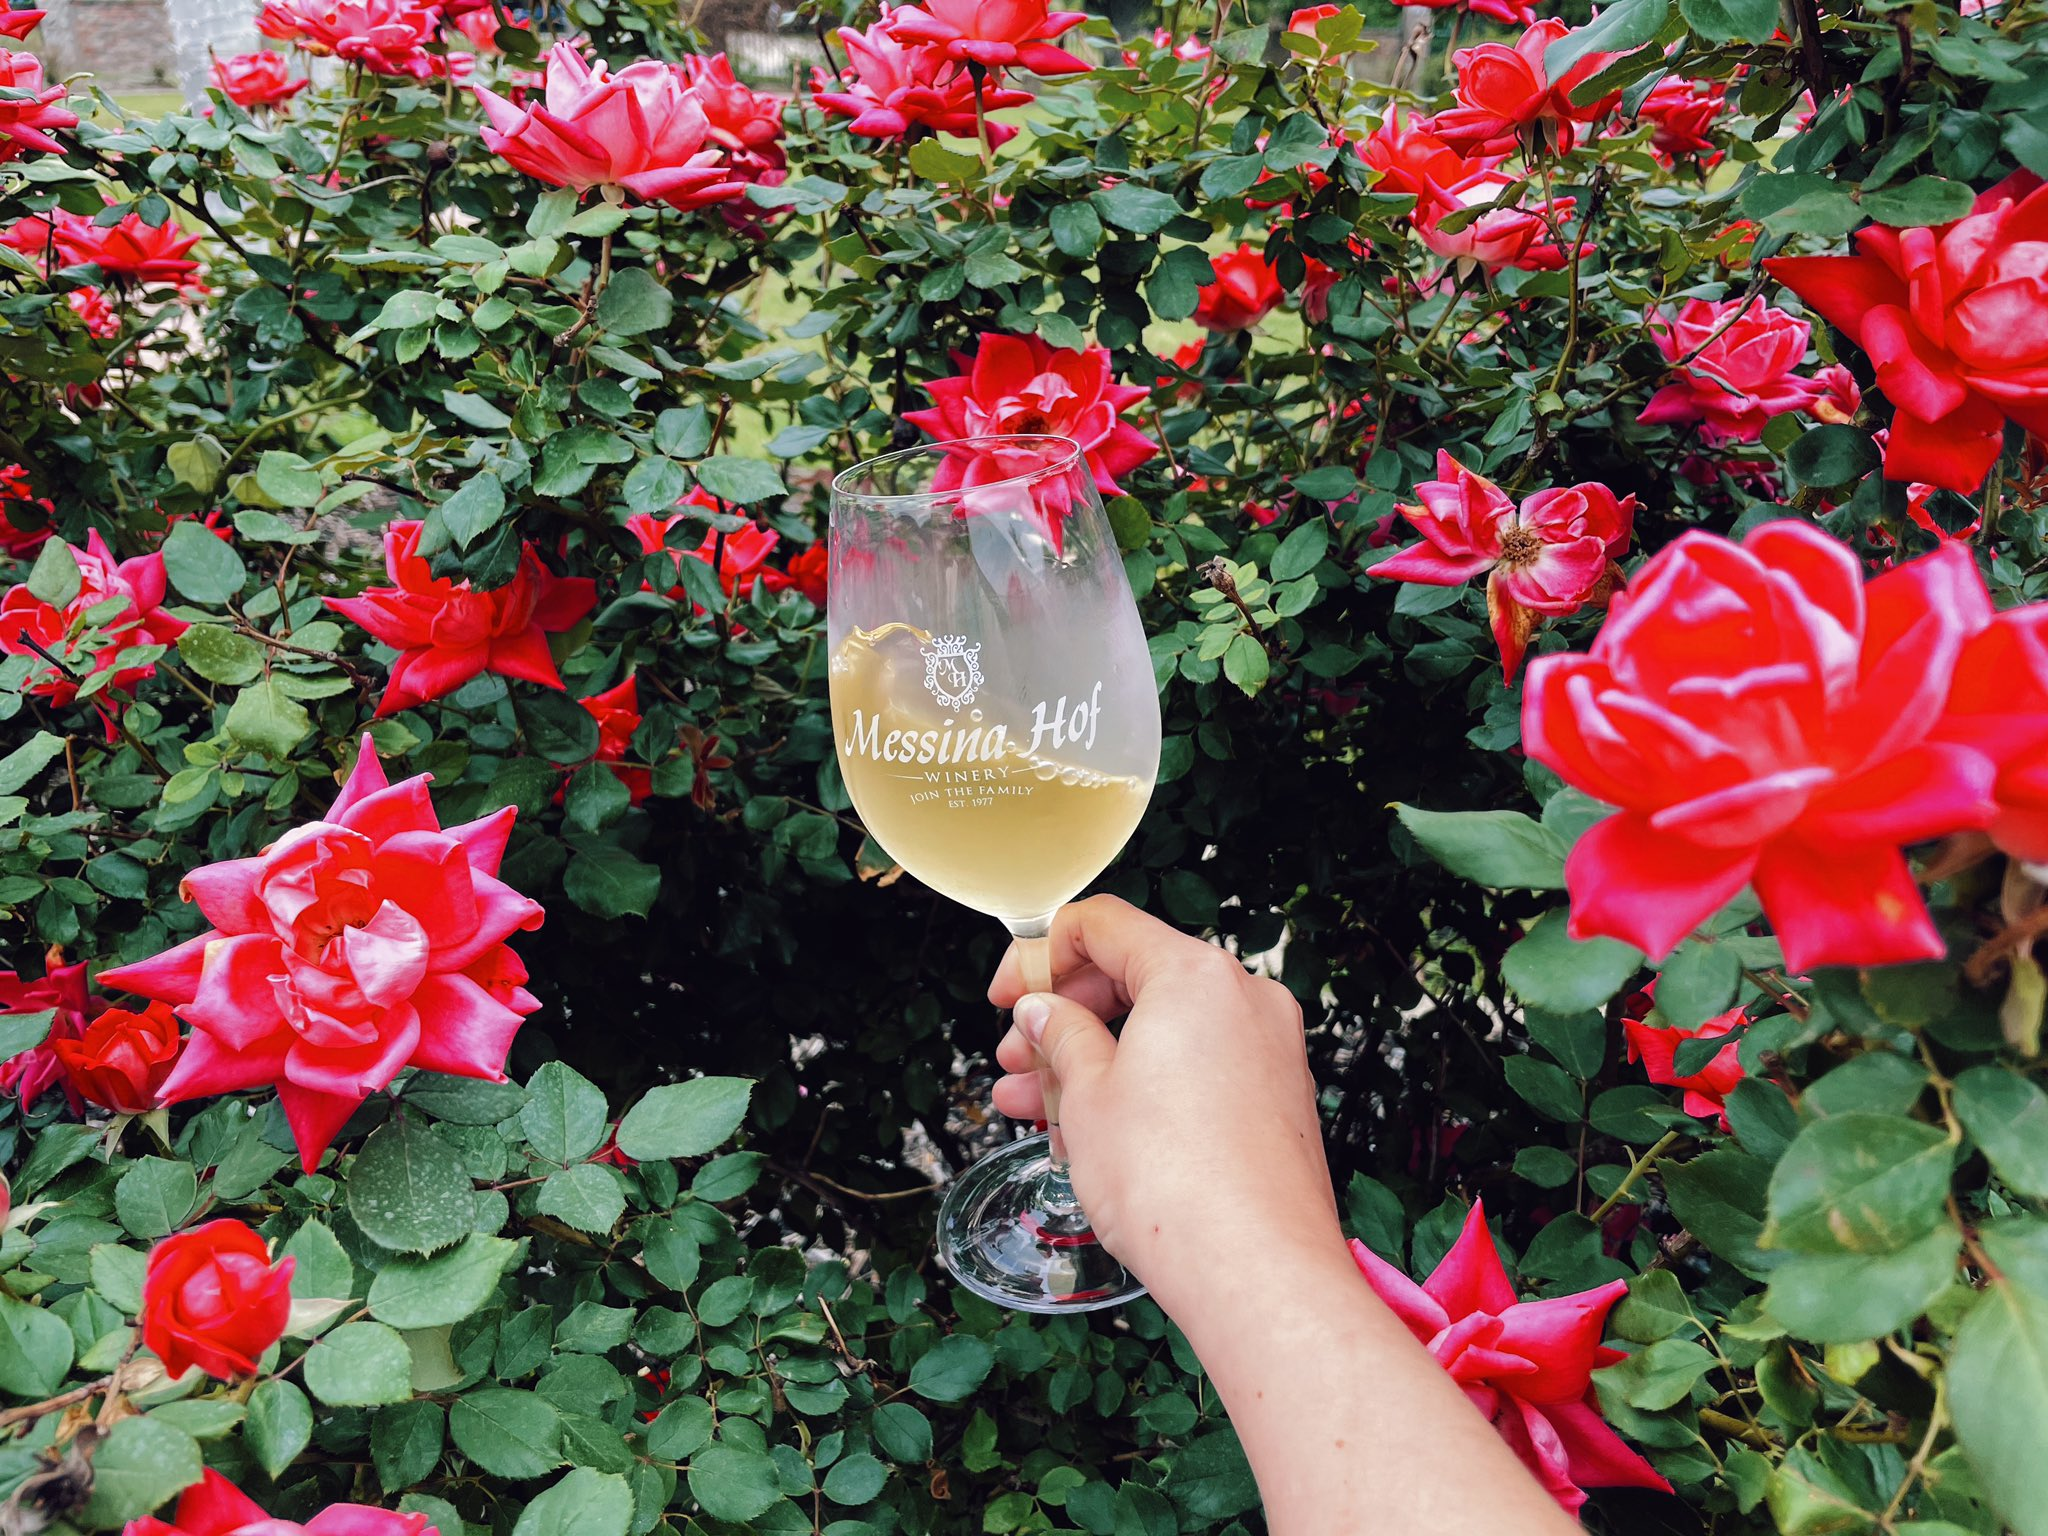 TEXAS: WINE, FOOD, ART, FLOWERS & SCIENCE:  THE GOOD THINGS IN LIFE cover image